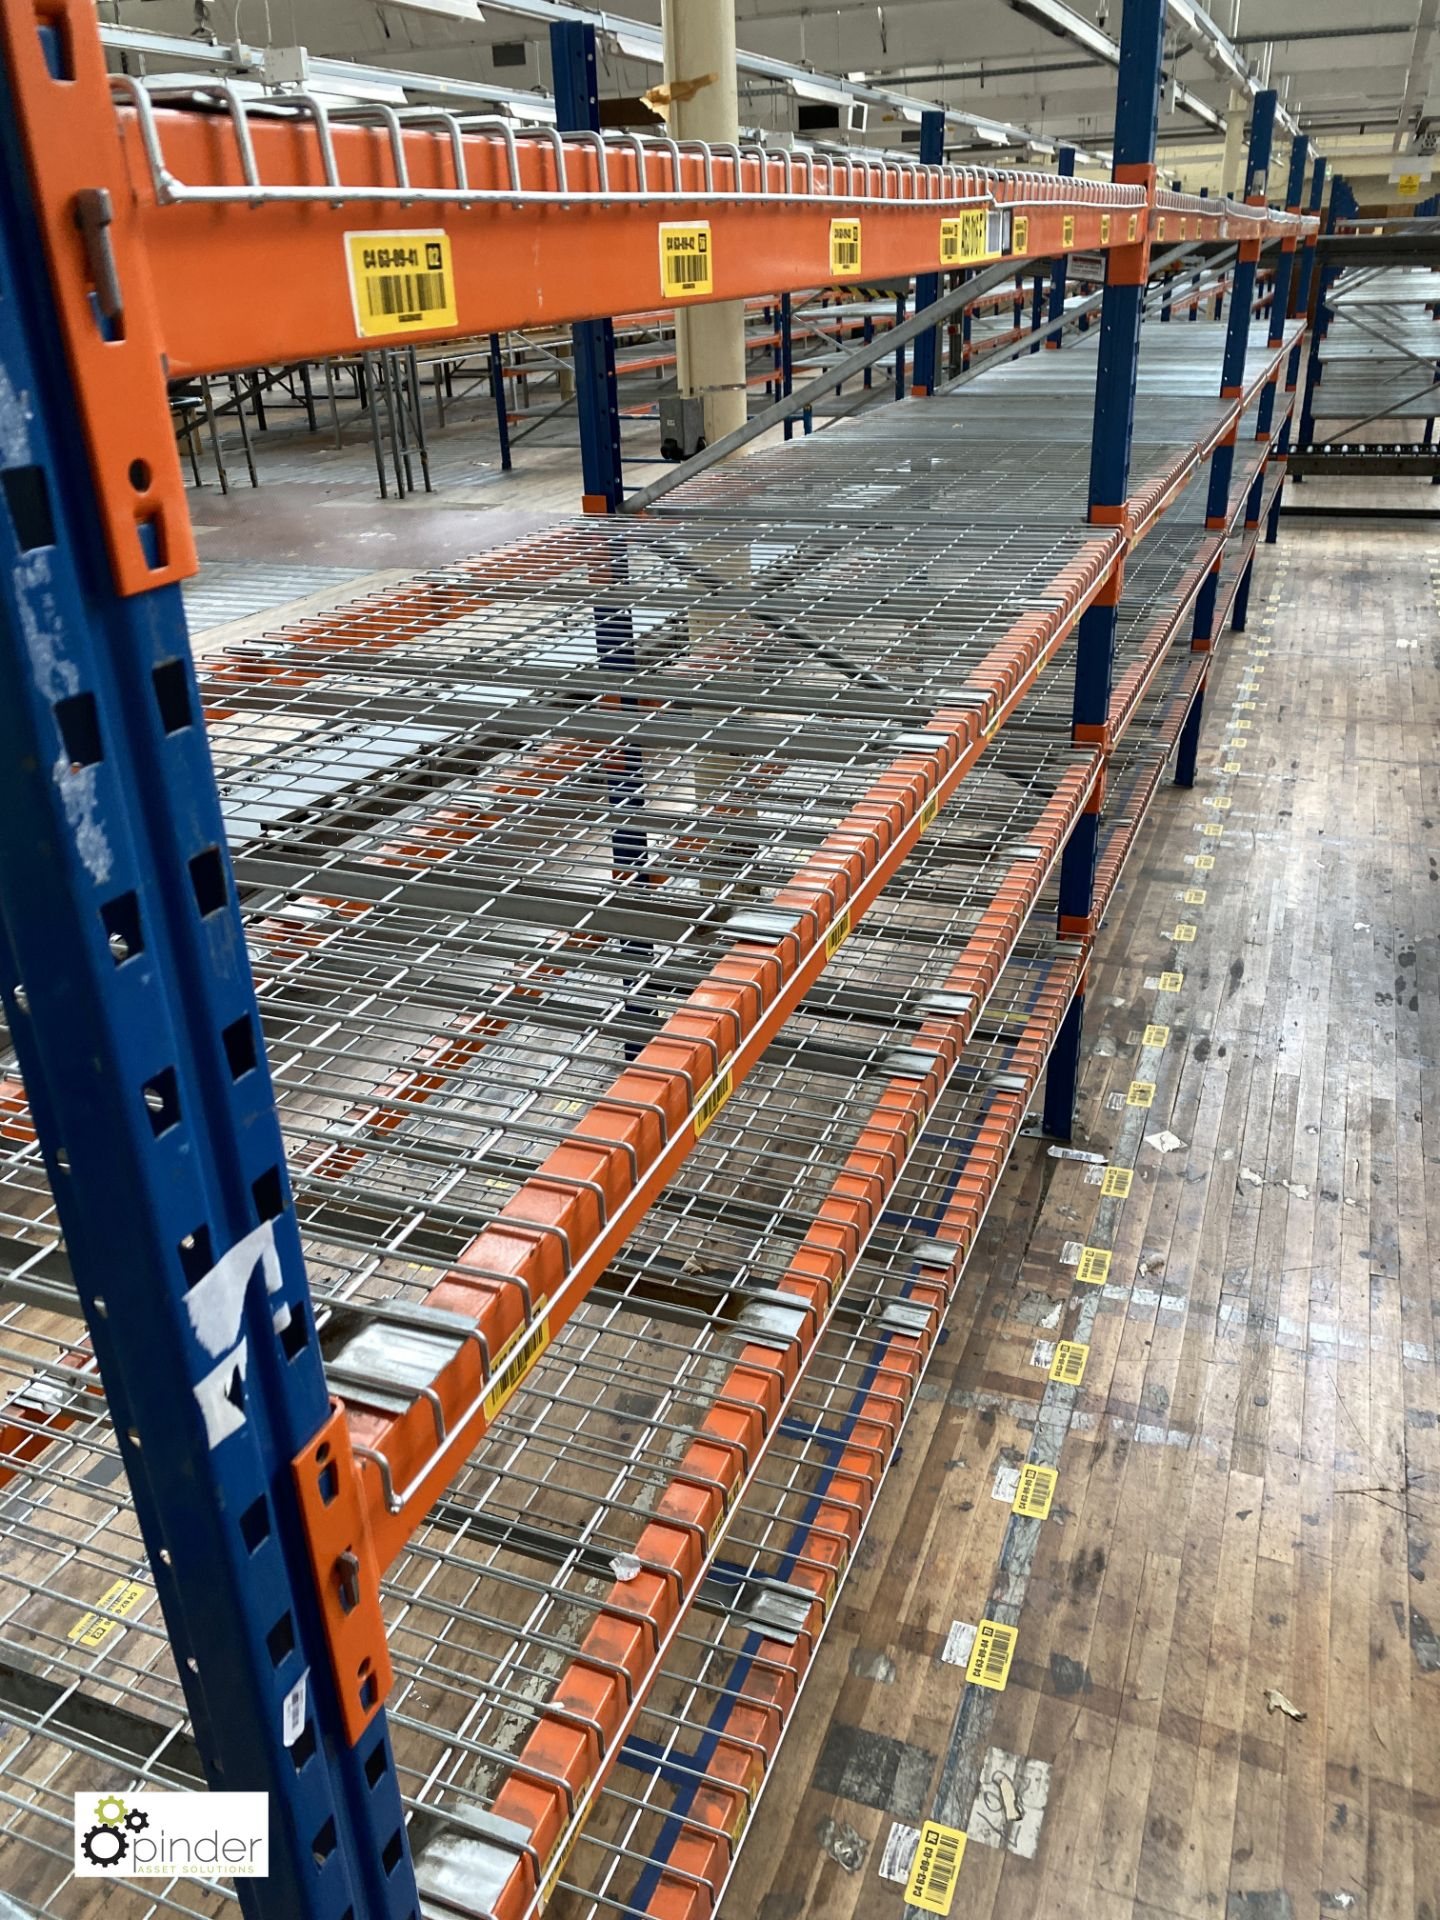 4 bays PSS 2K85 16 boltless Stock Racking, comprising 5 uprights 2400mm x 1200mm, 32 beams 2700mm, - Image 3 of 5